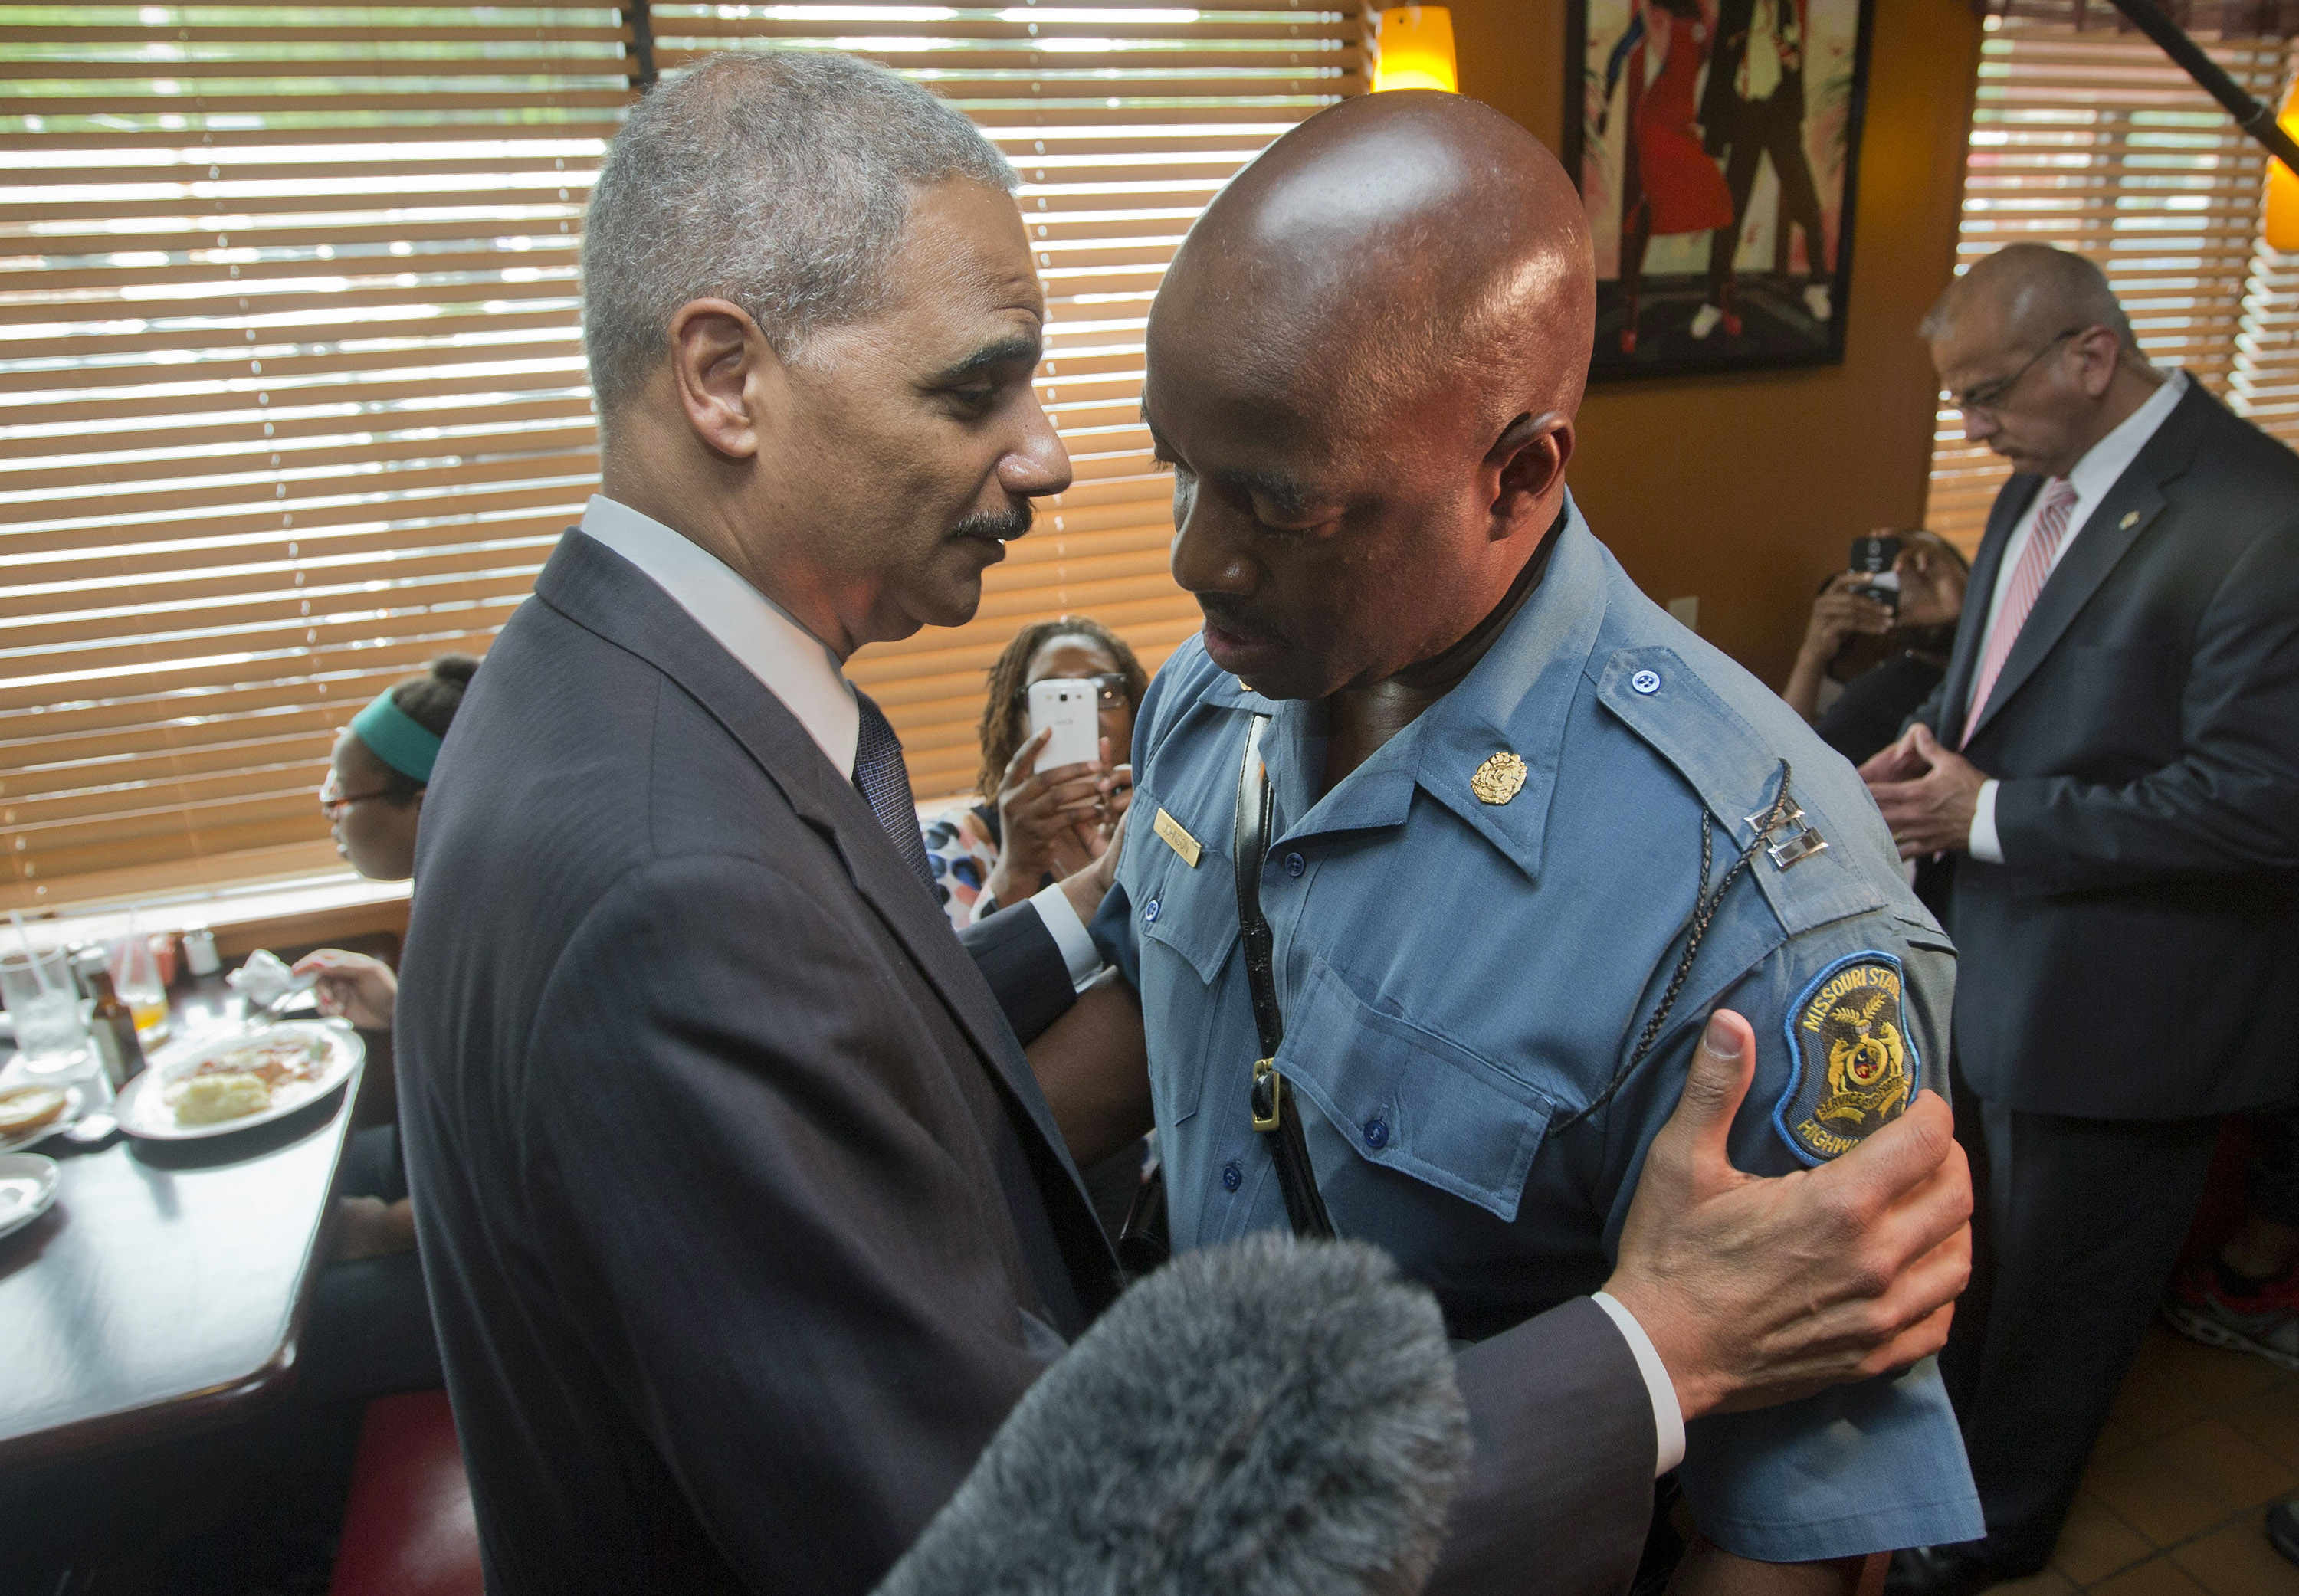 U.S. Attorney General Eric Holder appeared with Capt. Ron Johnson  at Drake's Place Restaurant in Ferguson on Aug. 20, 2014. Holder's visit was meant to calm tensions after almost 10 days of protests.